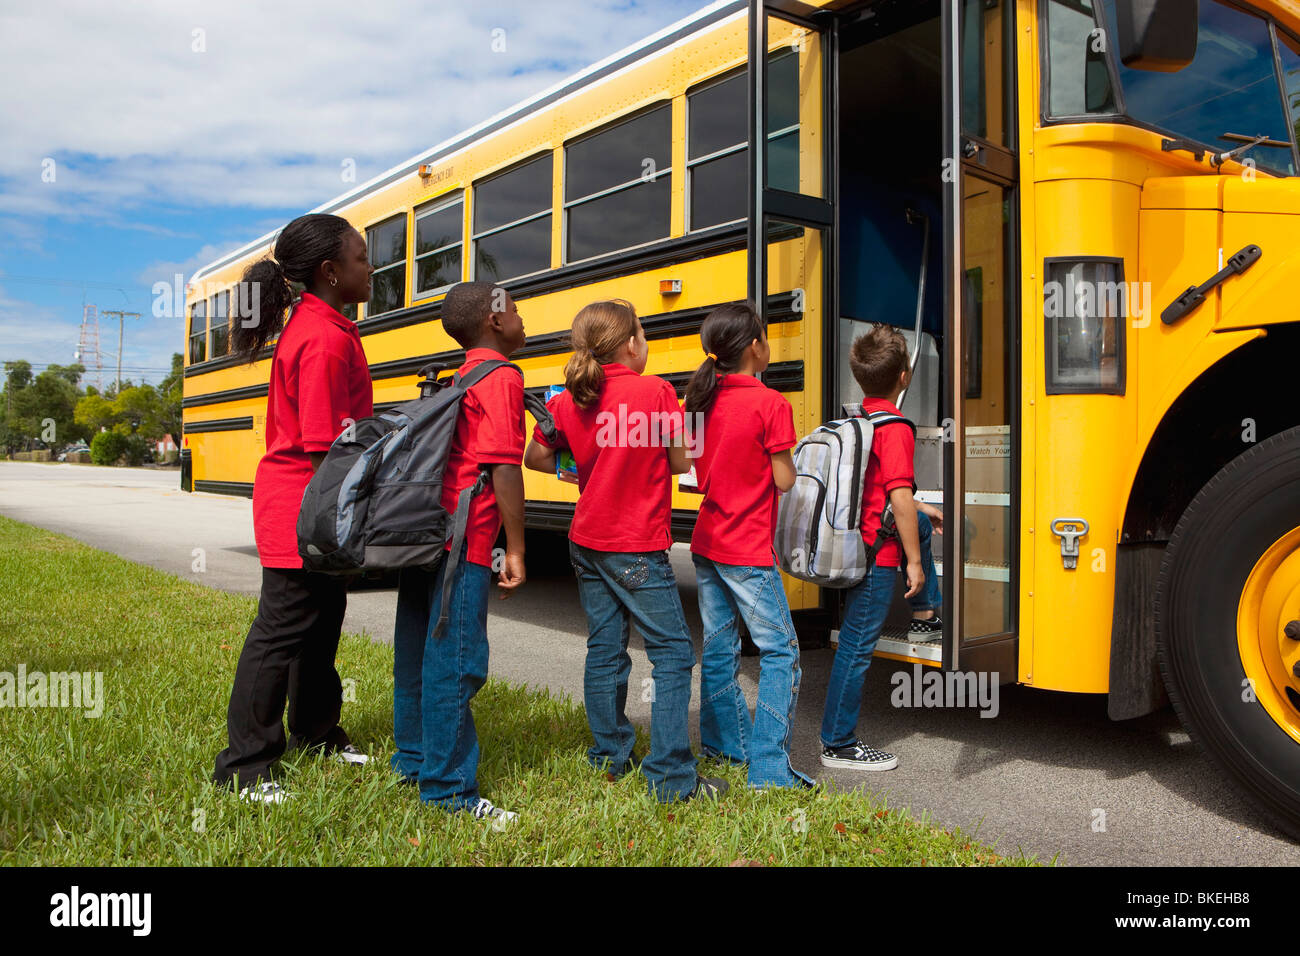 Students Lined Up To Get On The School Bus - Stock Image